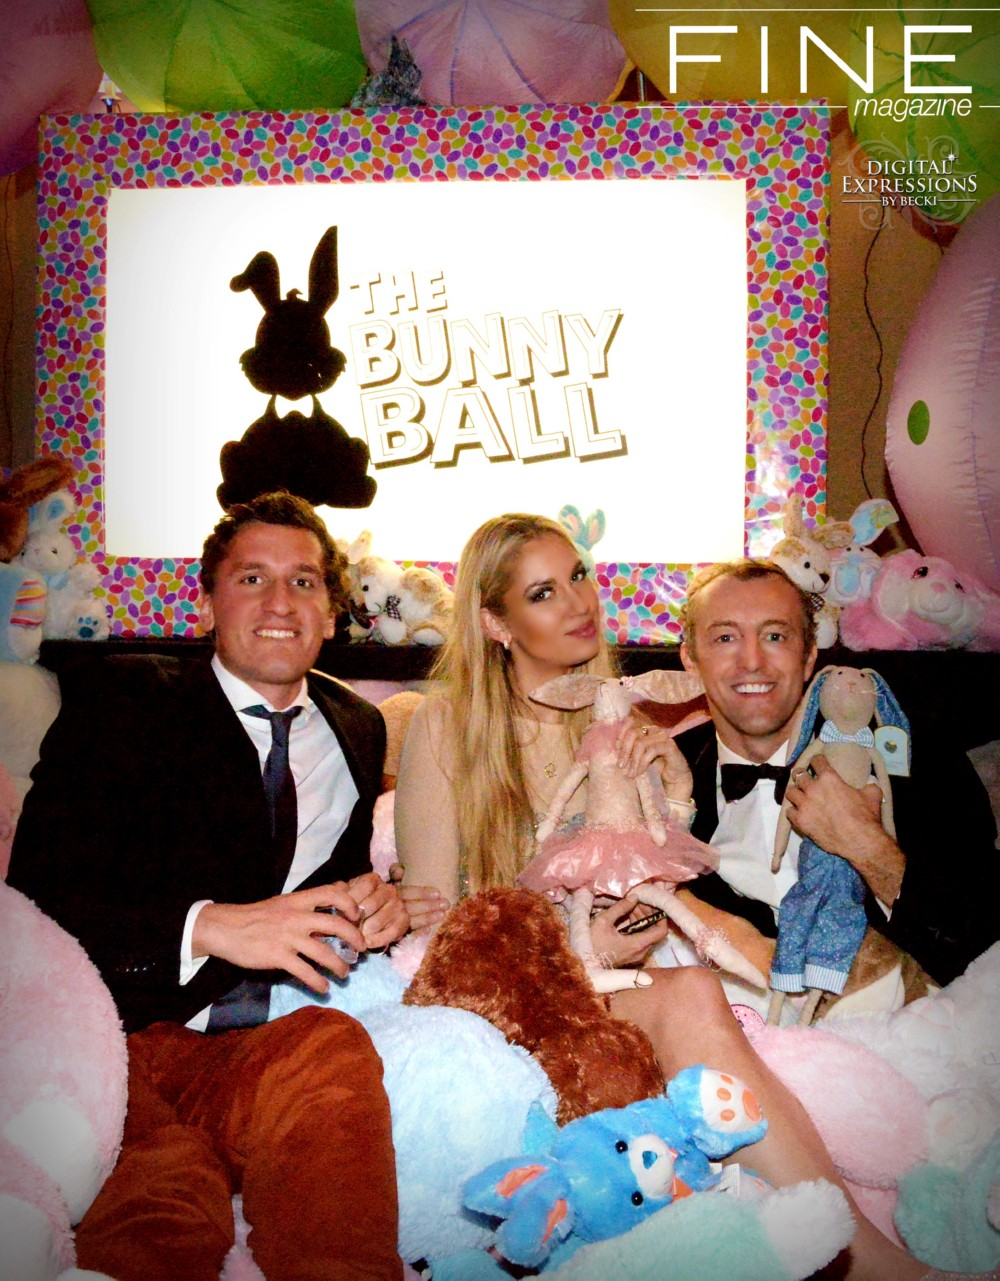 2016 Bunny Ball by FINE Magazine - 82.jpg